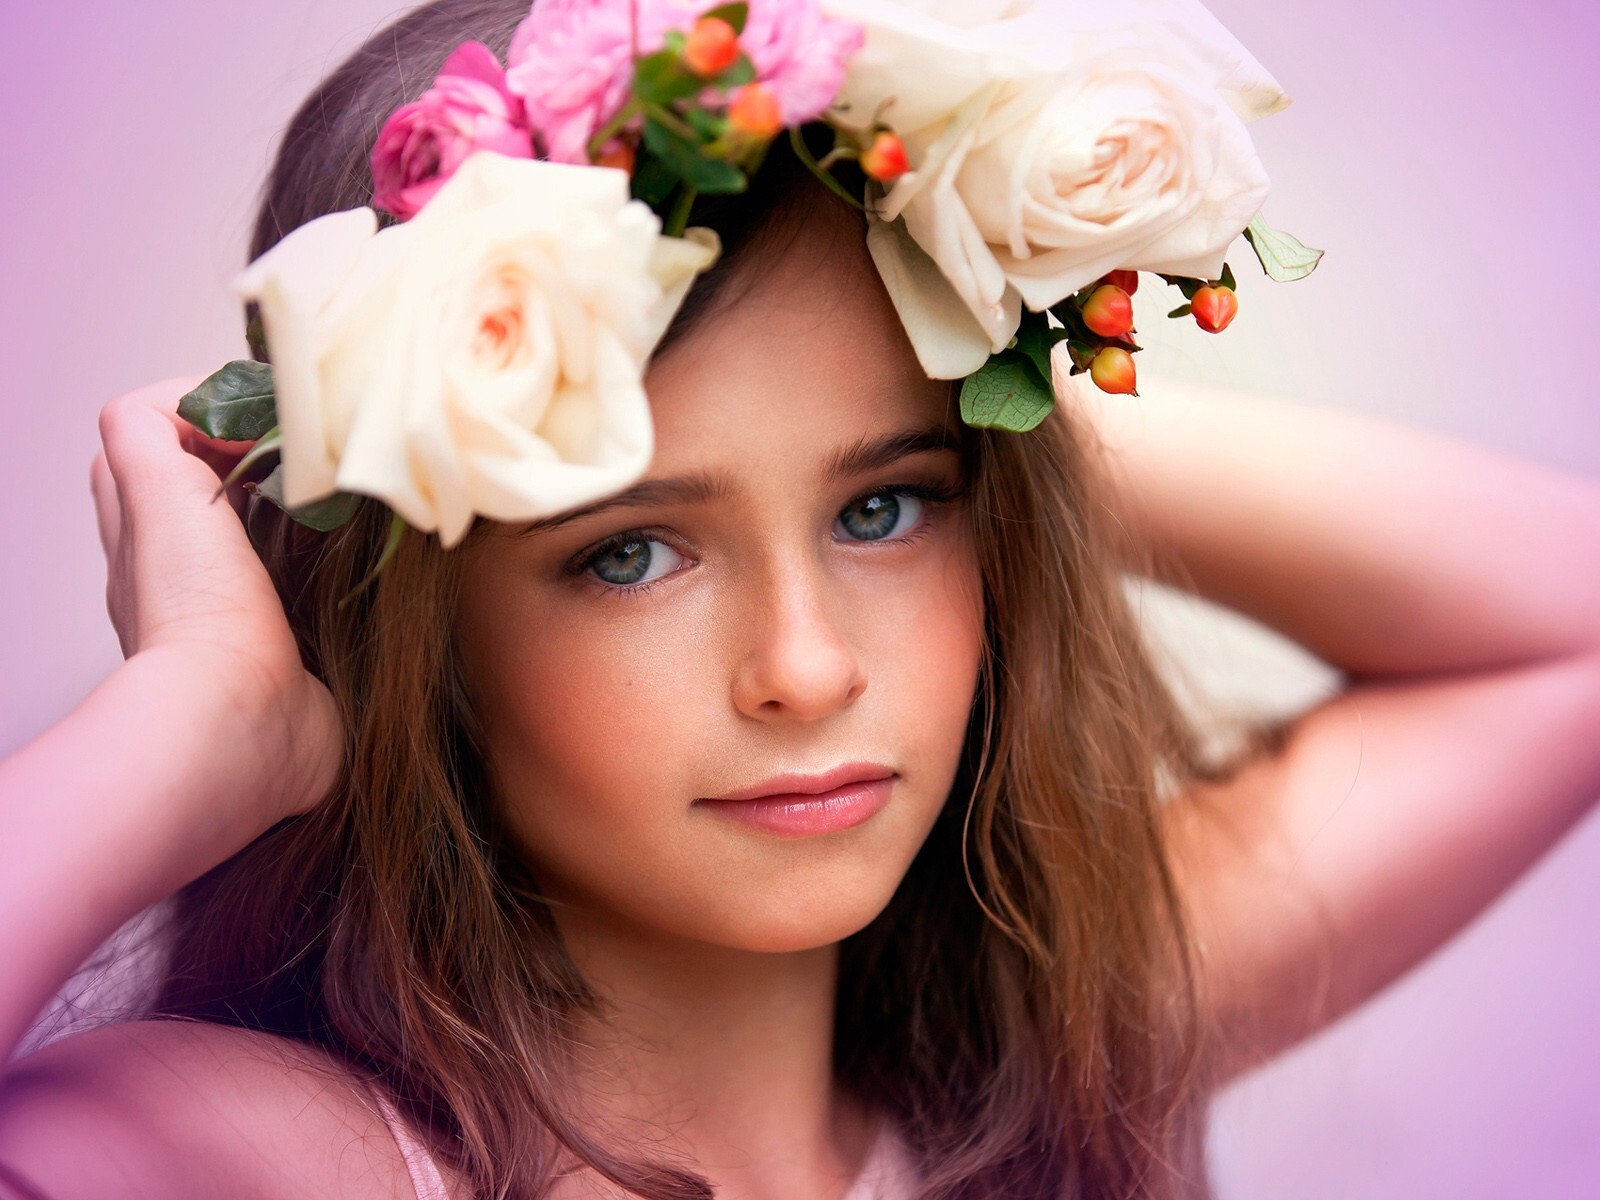 child-with-flowers.jpg